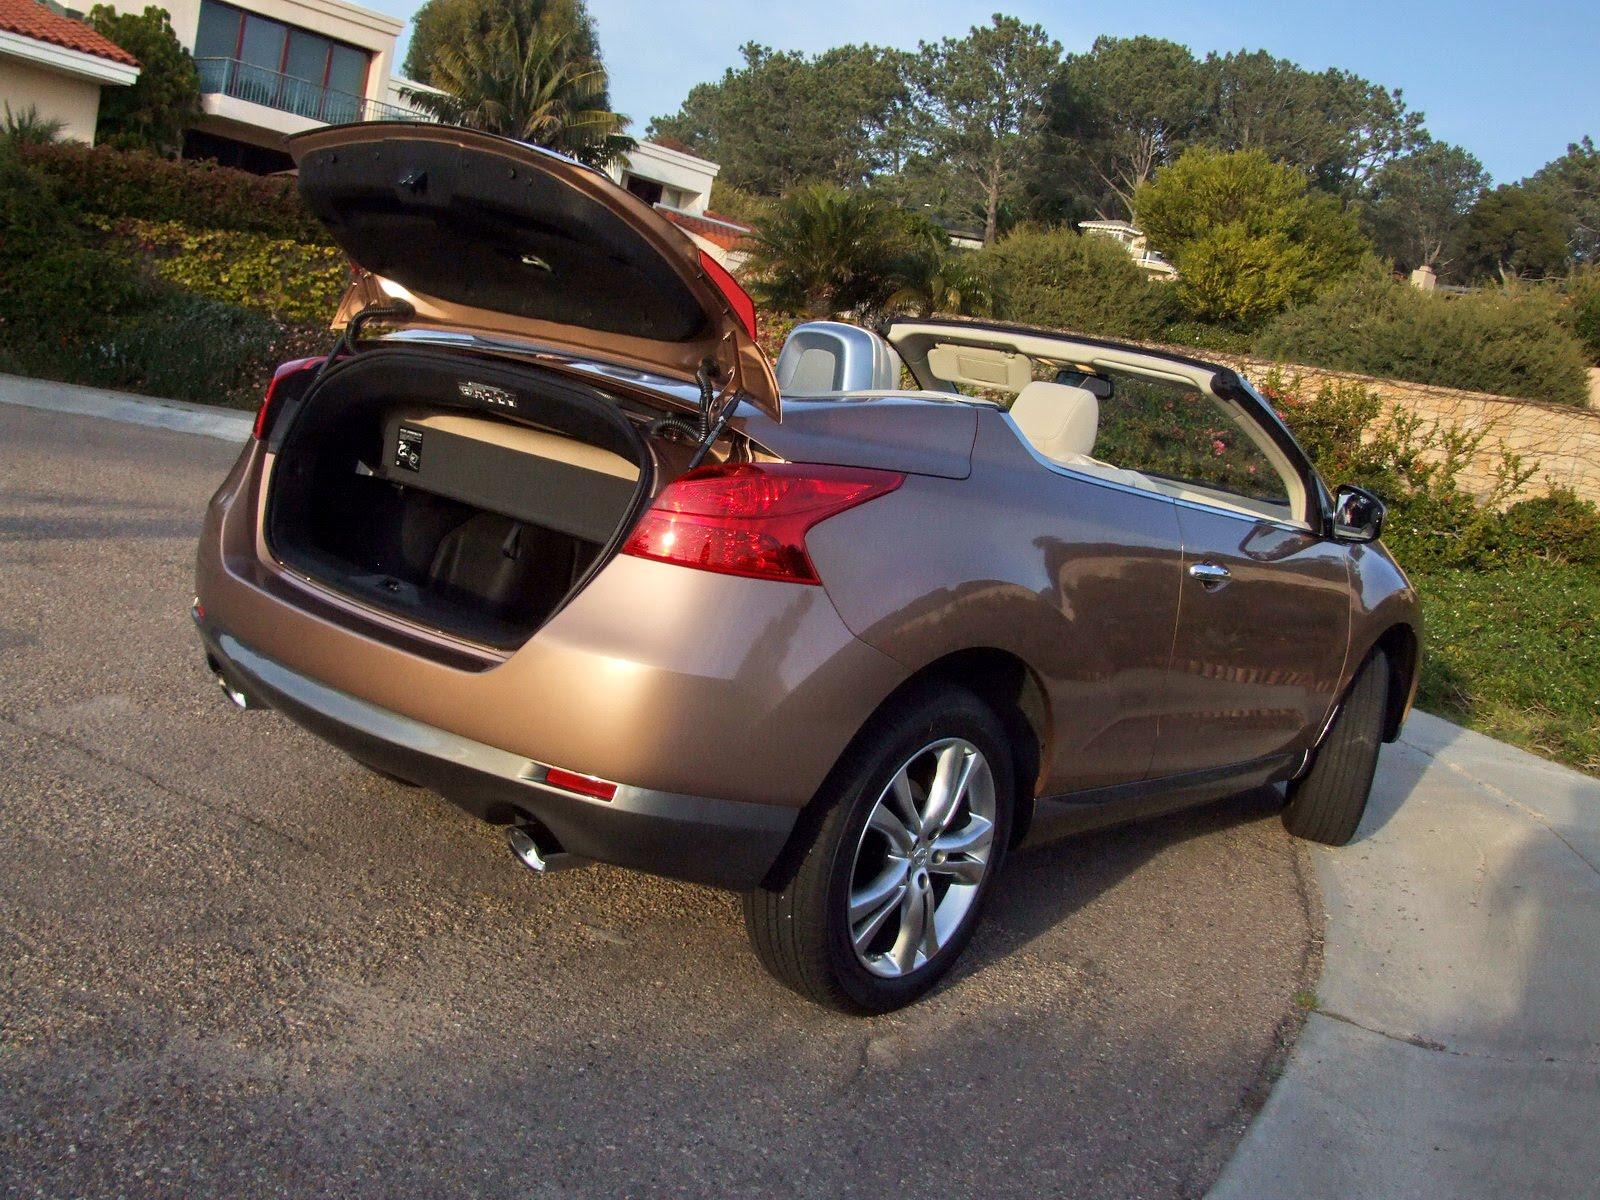 2010 - [Nissan] Murano CrossCabriolet - Page 4 2011-Nissan-Murano-CC-TD-617